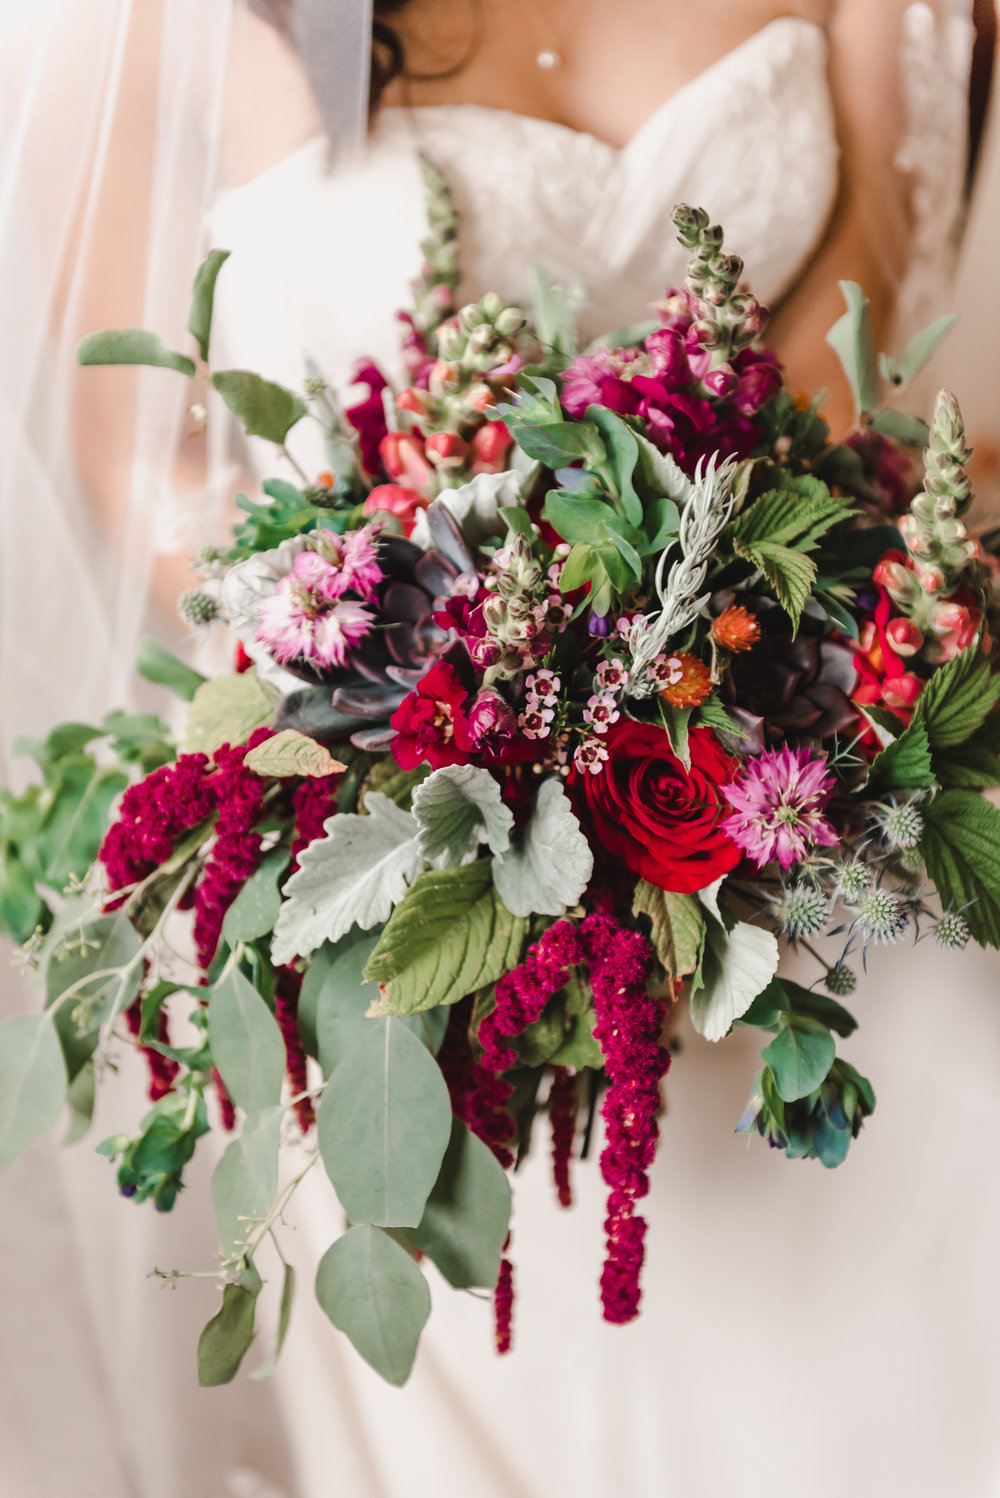 Oversized, Garden-Fresh Organic Wedding Bridal Bouquet from Lyons Farmette